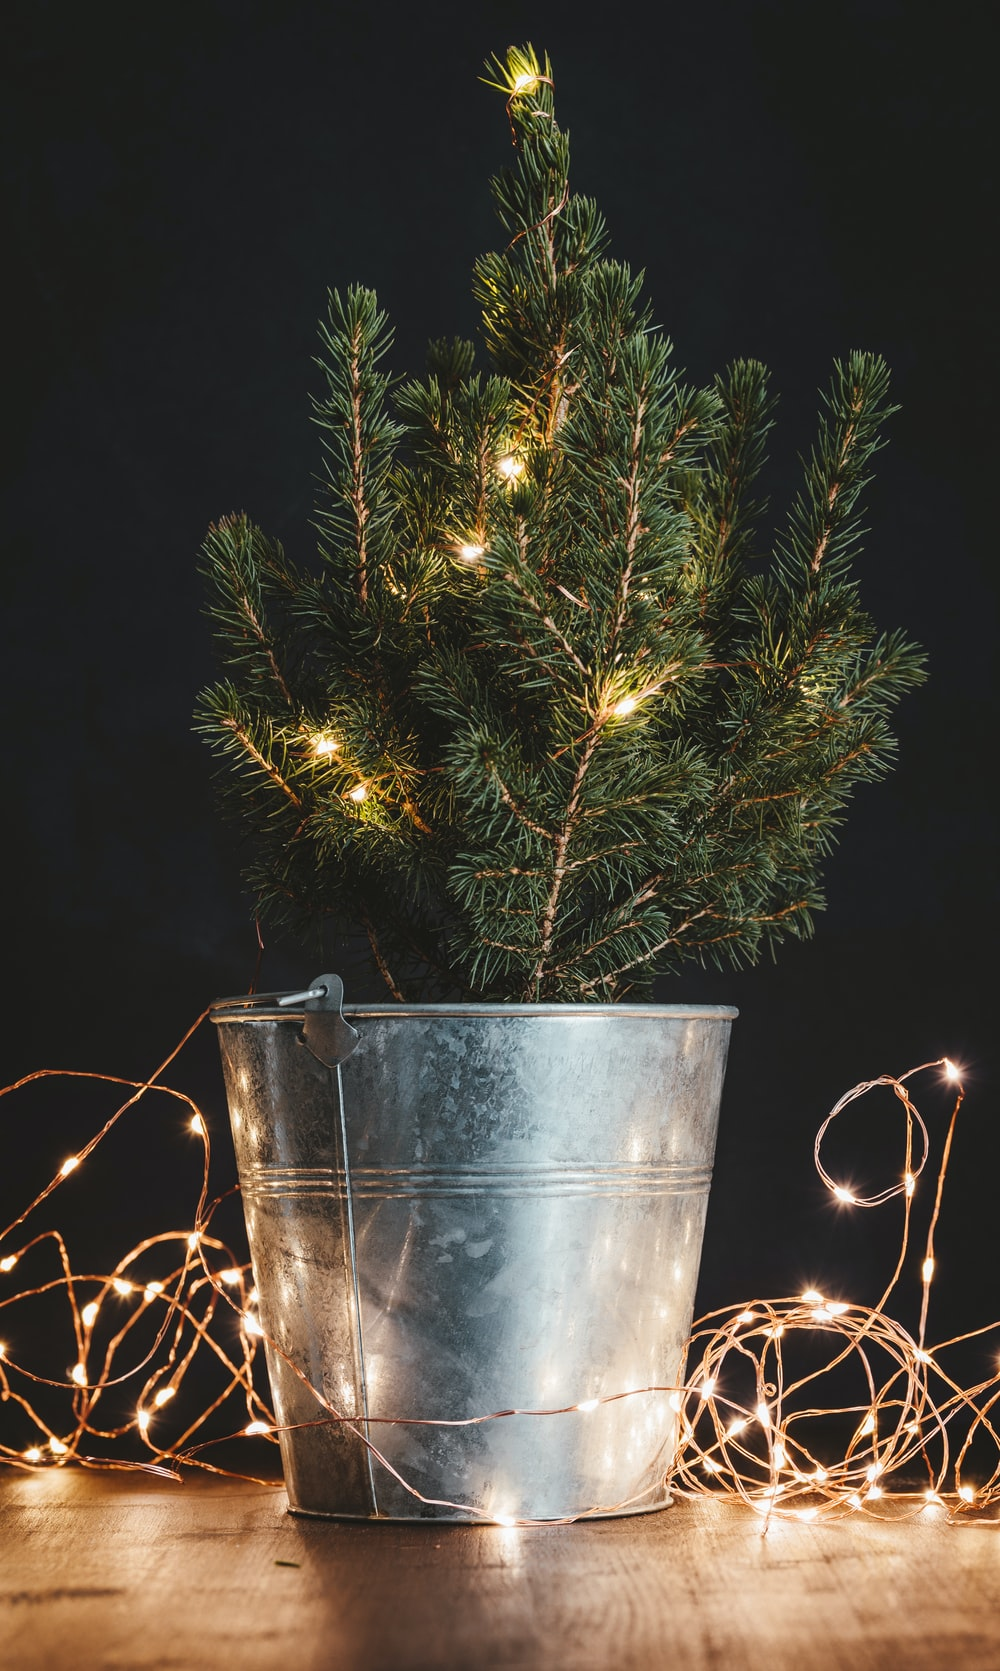 green Christmas tree in bucket with string lights